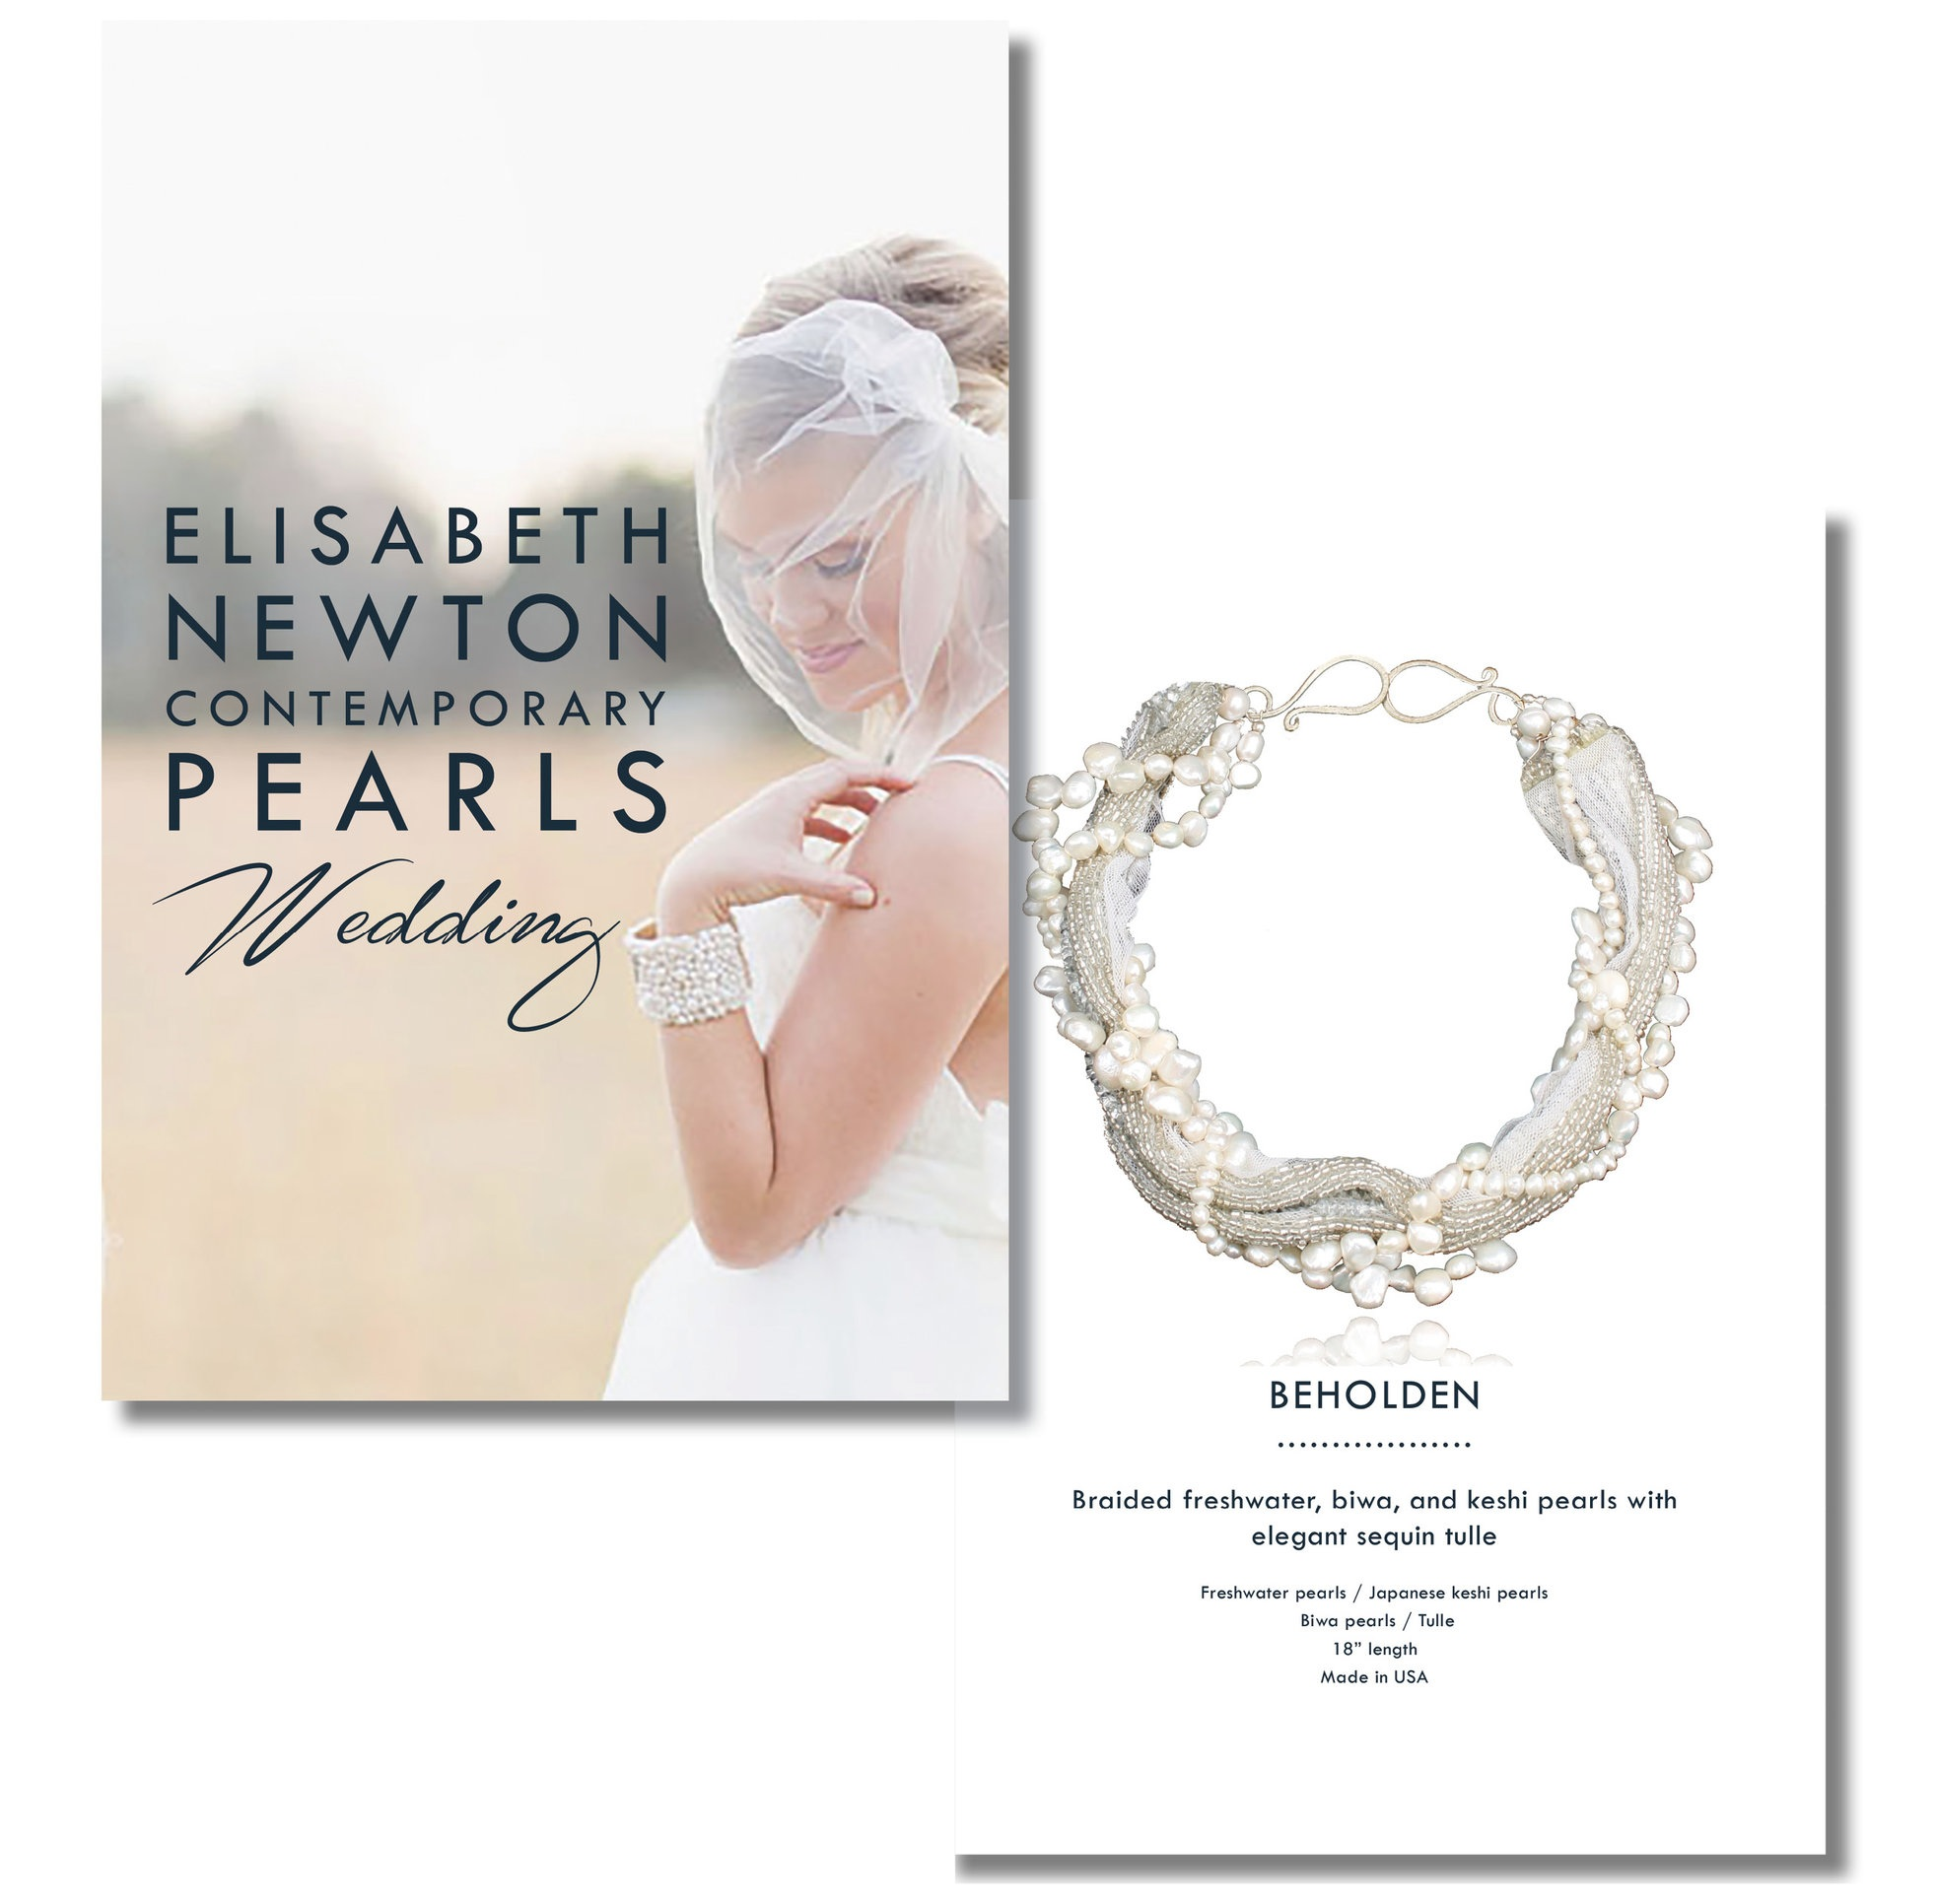 Catalog + Copy - Expanding further on the softened aesthetic of the Weddings brand, I designed a catalog showcasing a selection of top designs and wedding images. I combined editorial photographs from magazine photoshoots alongside detailed product photography.